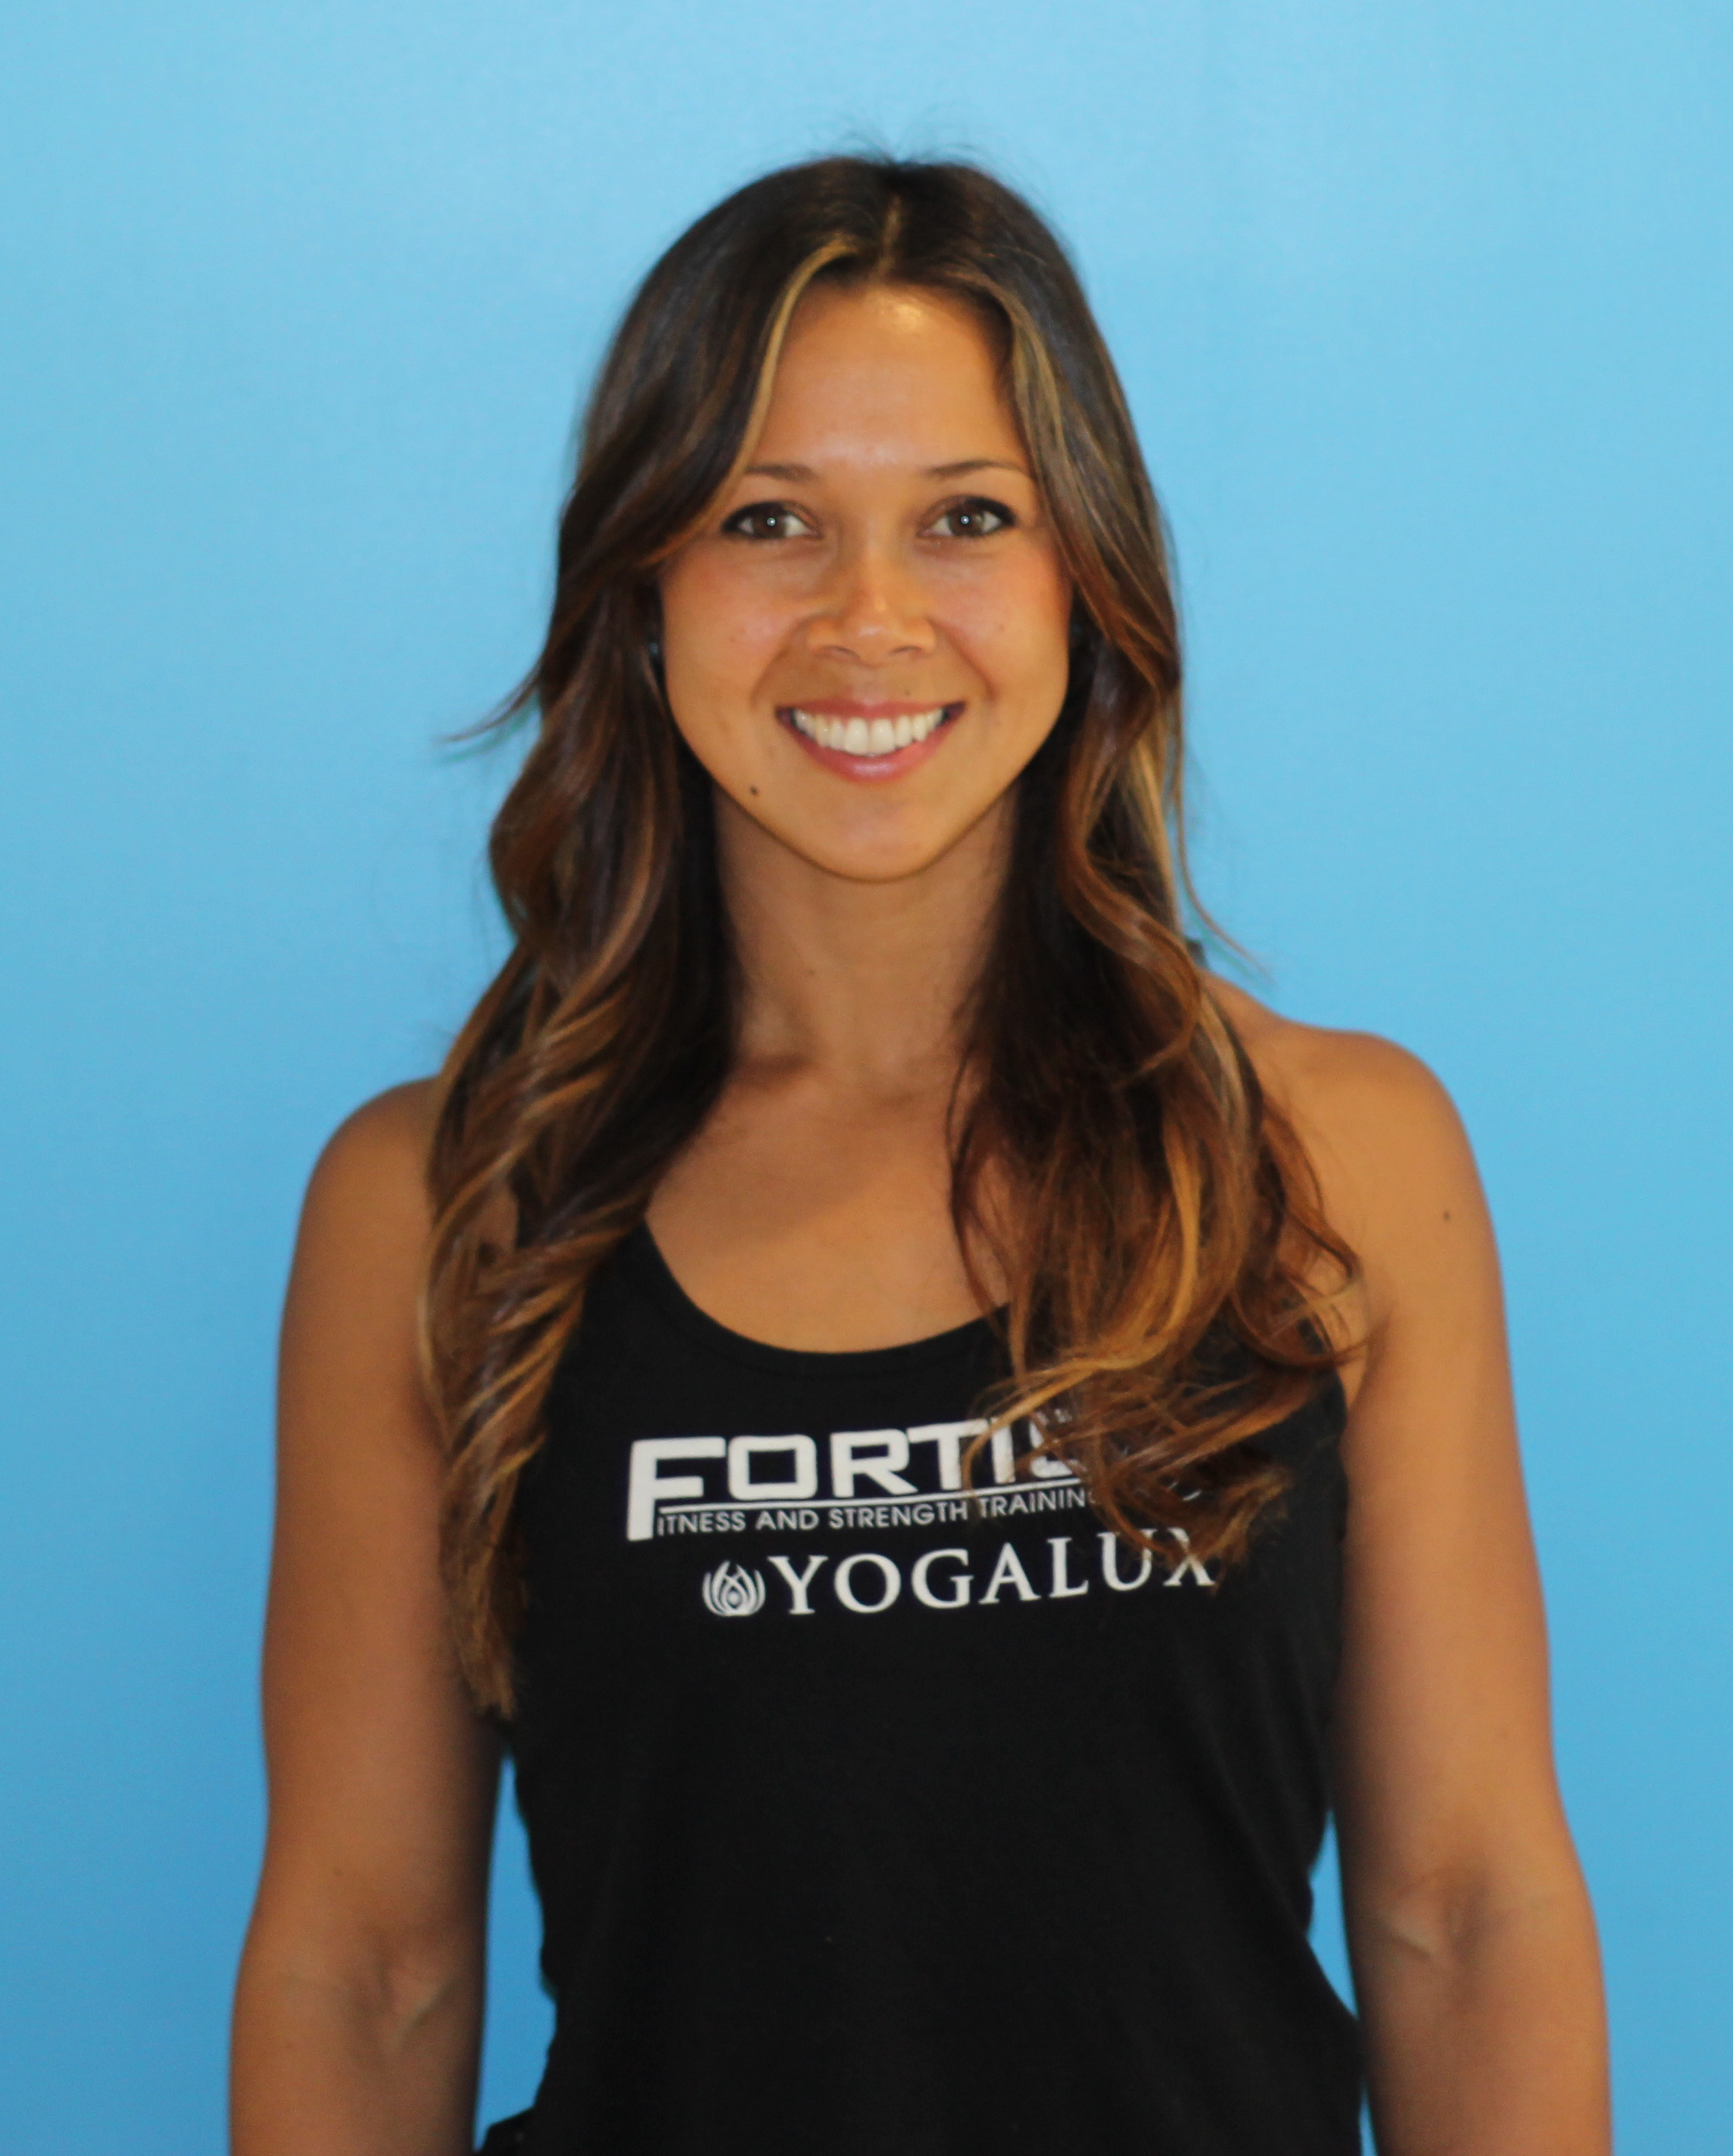 fortis-fitness-michelle